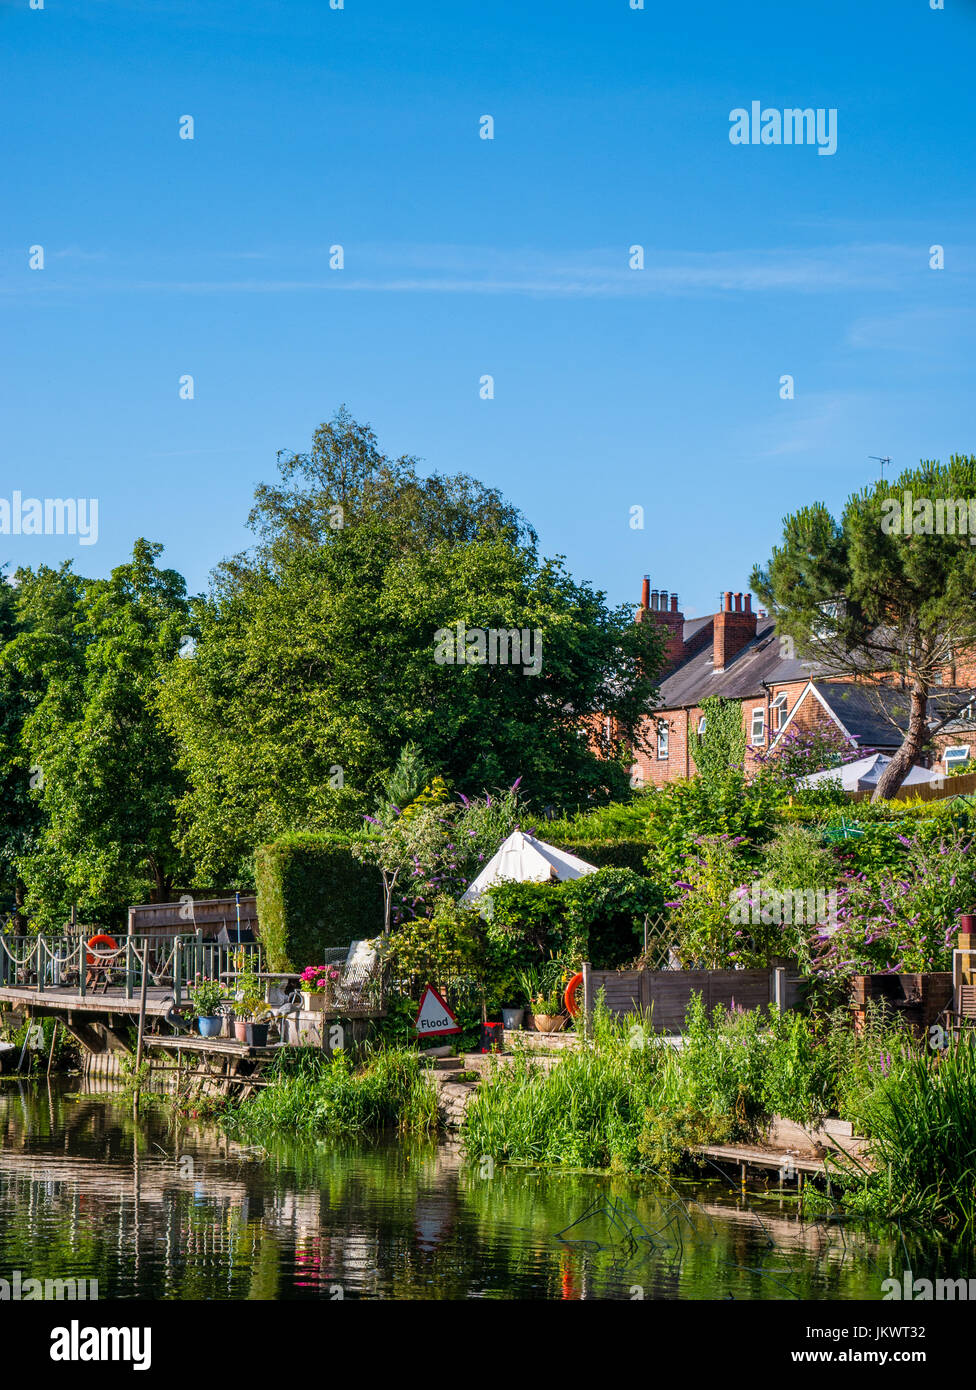 Terrace Housing and Gardens, River Kennet, Reading, Berkshire, England Stock Photo